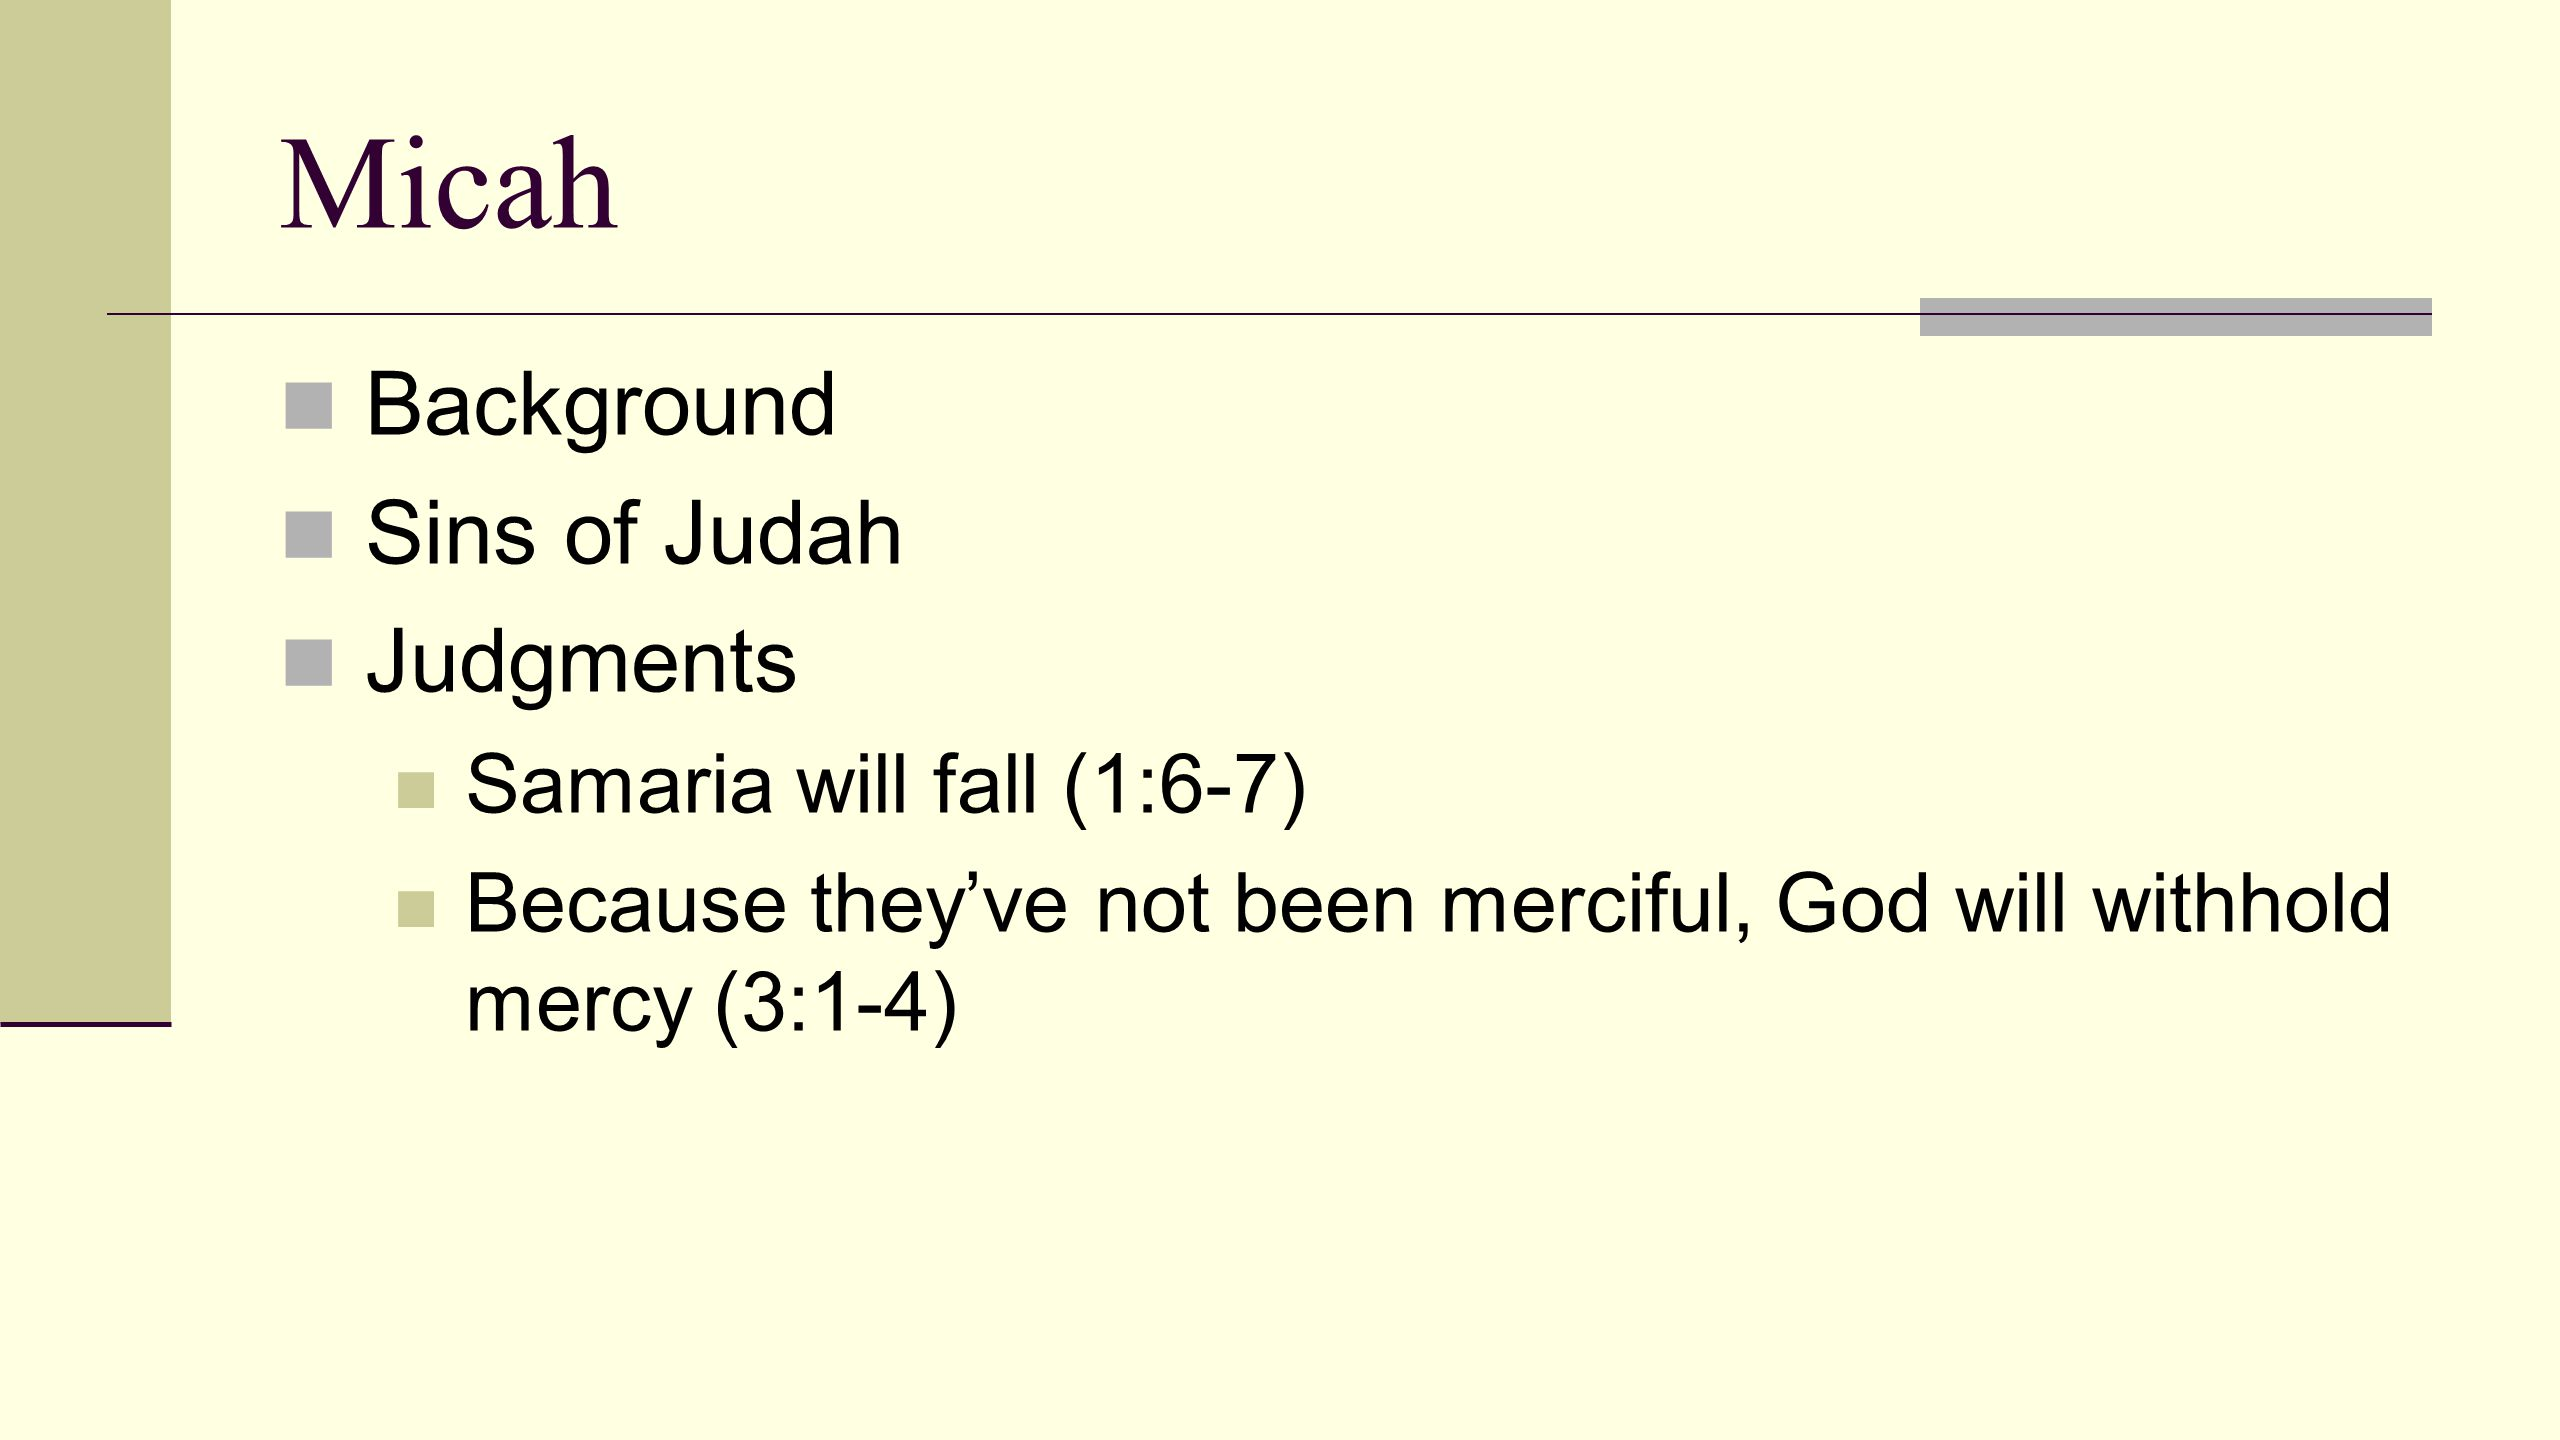 Micah Background Sins of Judah Judgments Samaria will fall (1:6-7) Because they've not been merciful, God will withhold mercy (3:1-4)